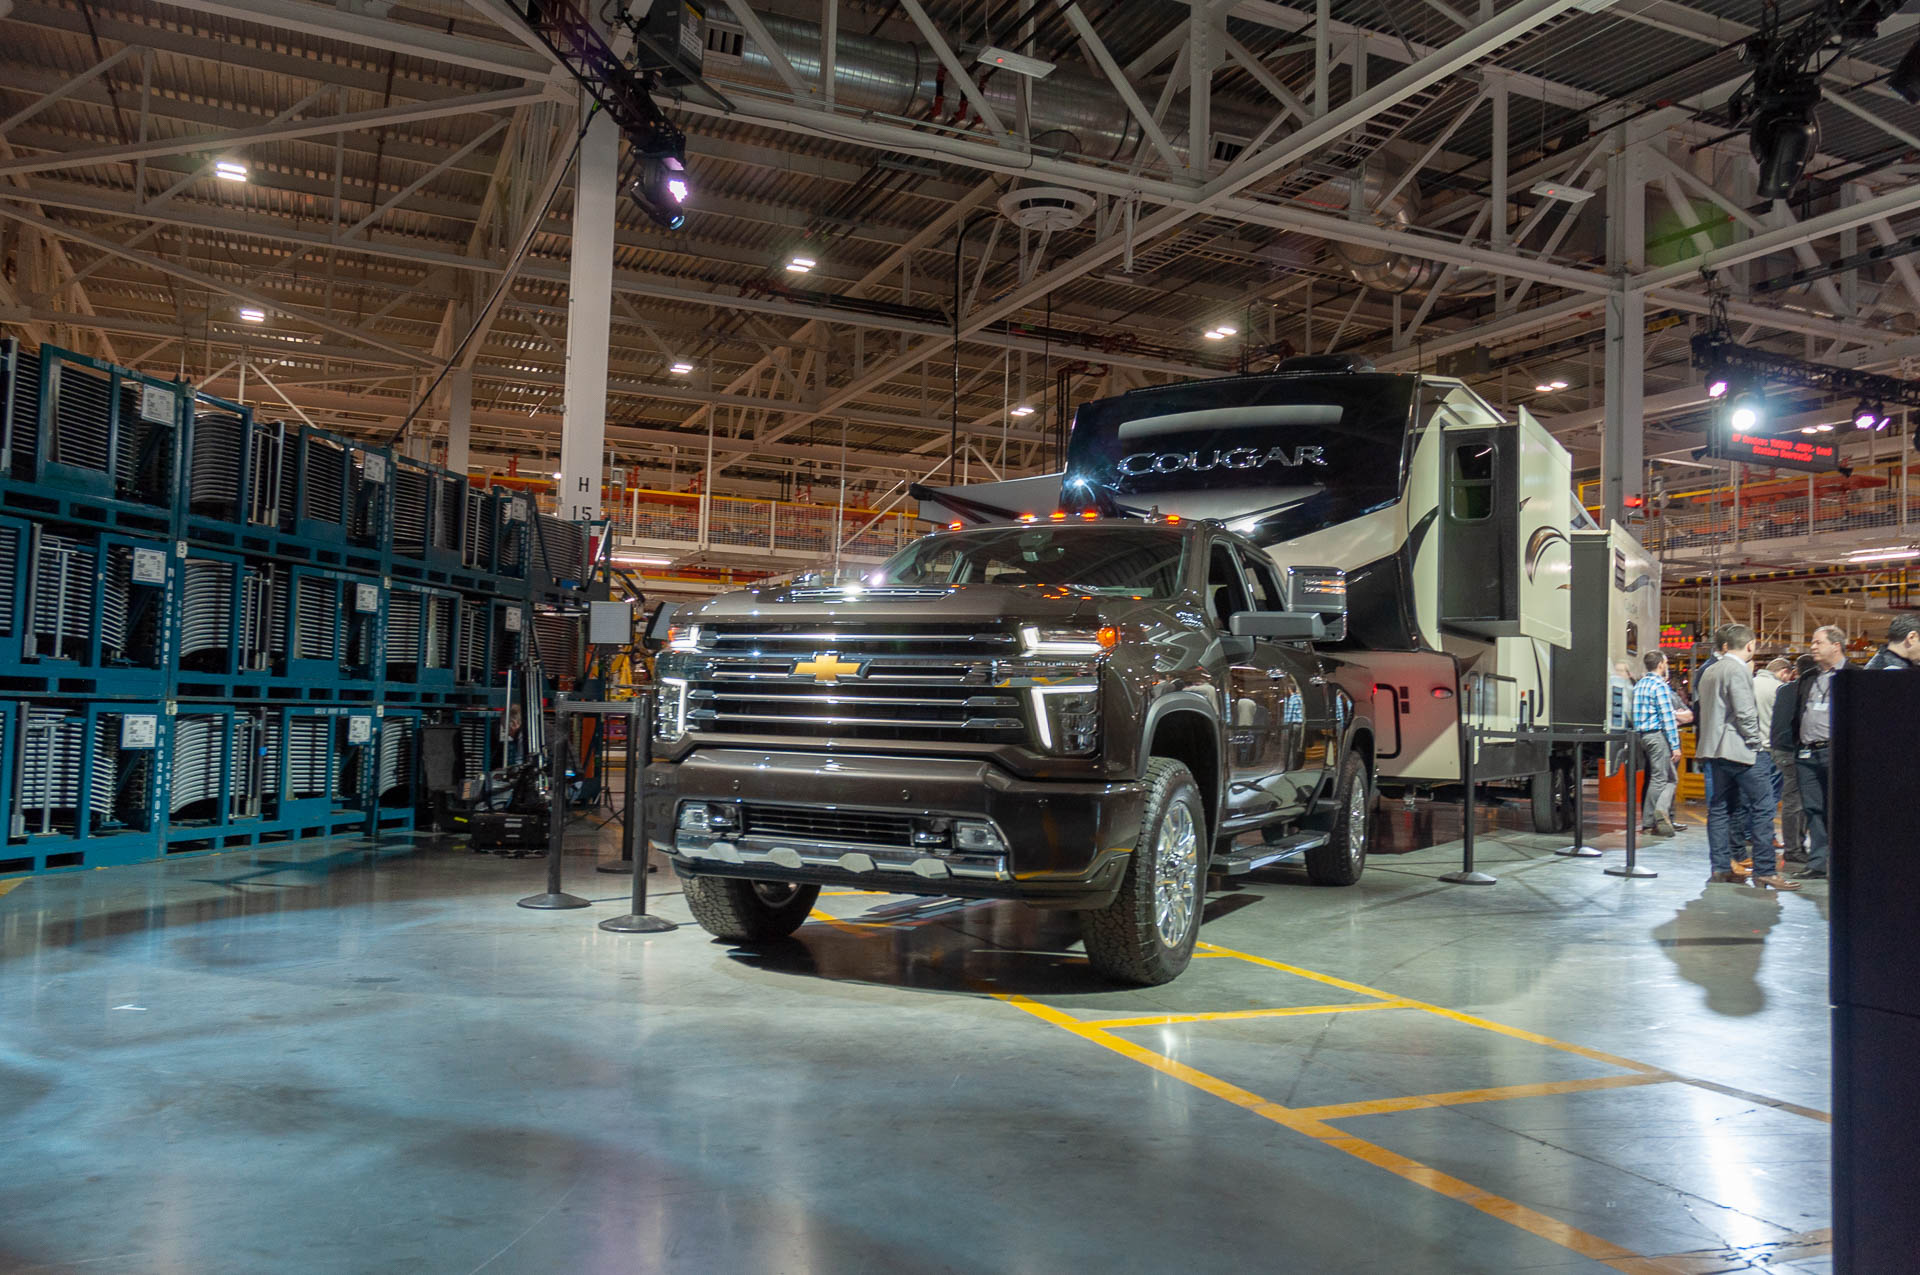 2020 Chevrolet Silverado 2500HD is ready to work: Heavy-duty king tows up to 35,500 pounds